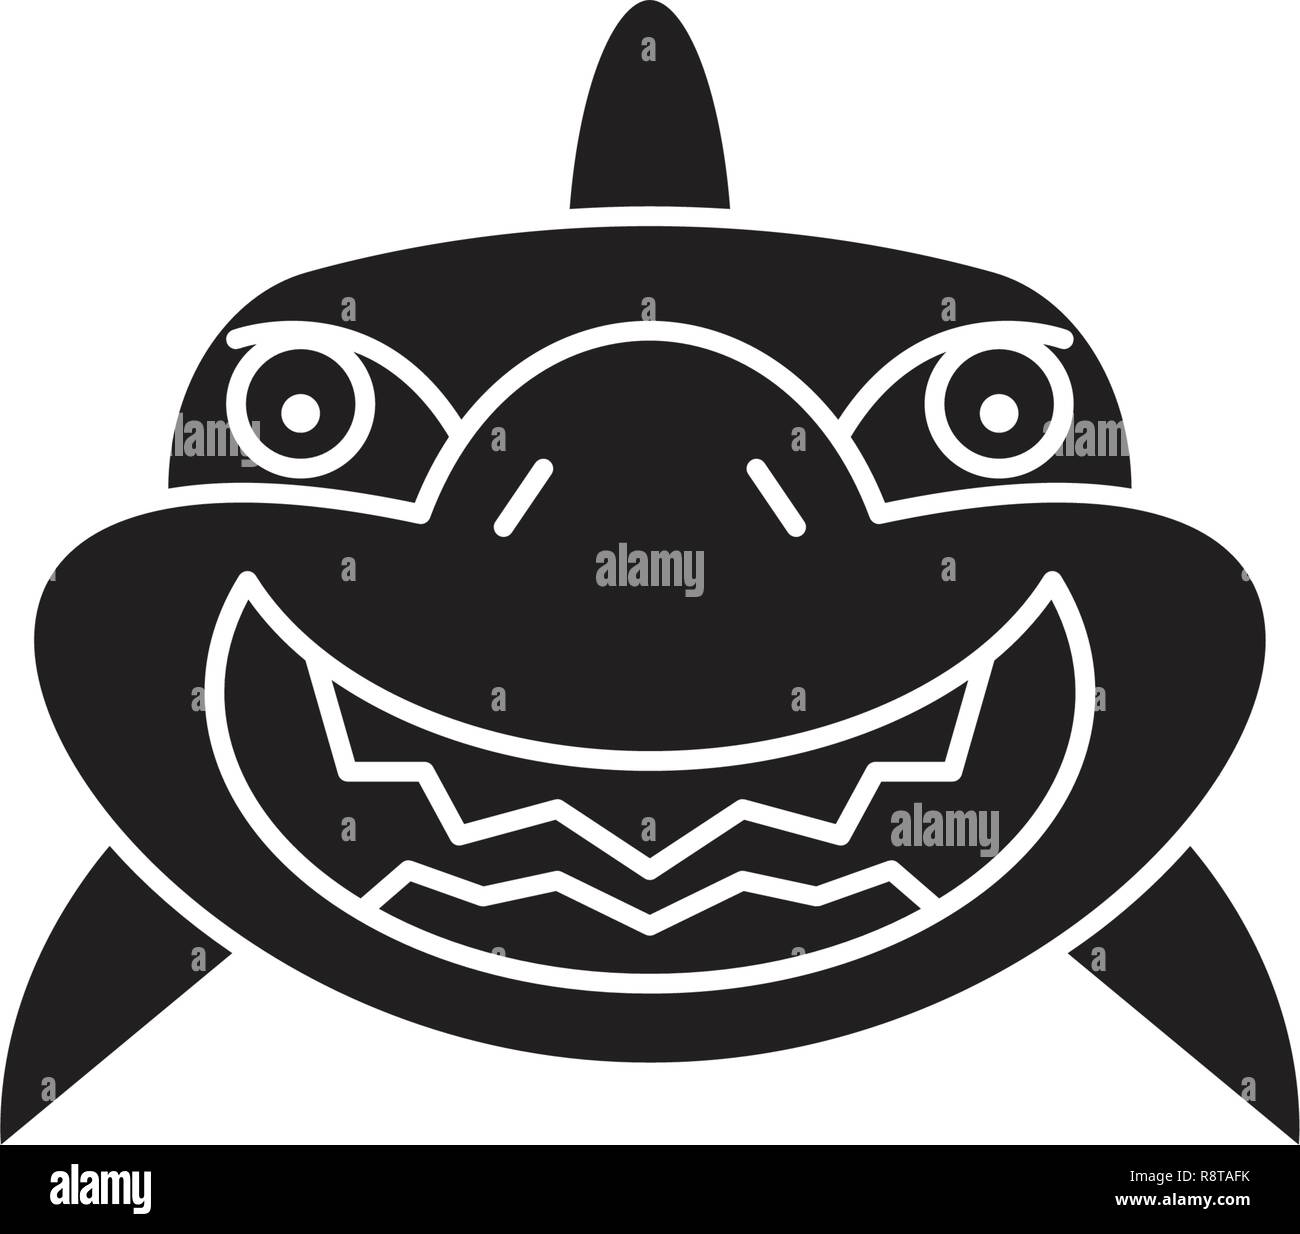 Shark smile black vector concept icon. Shark smile flat illustration, sign - Stock Image